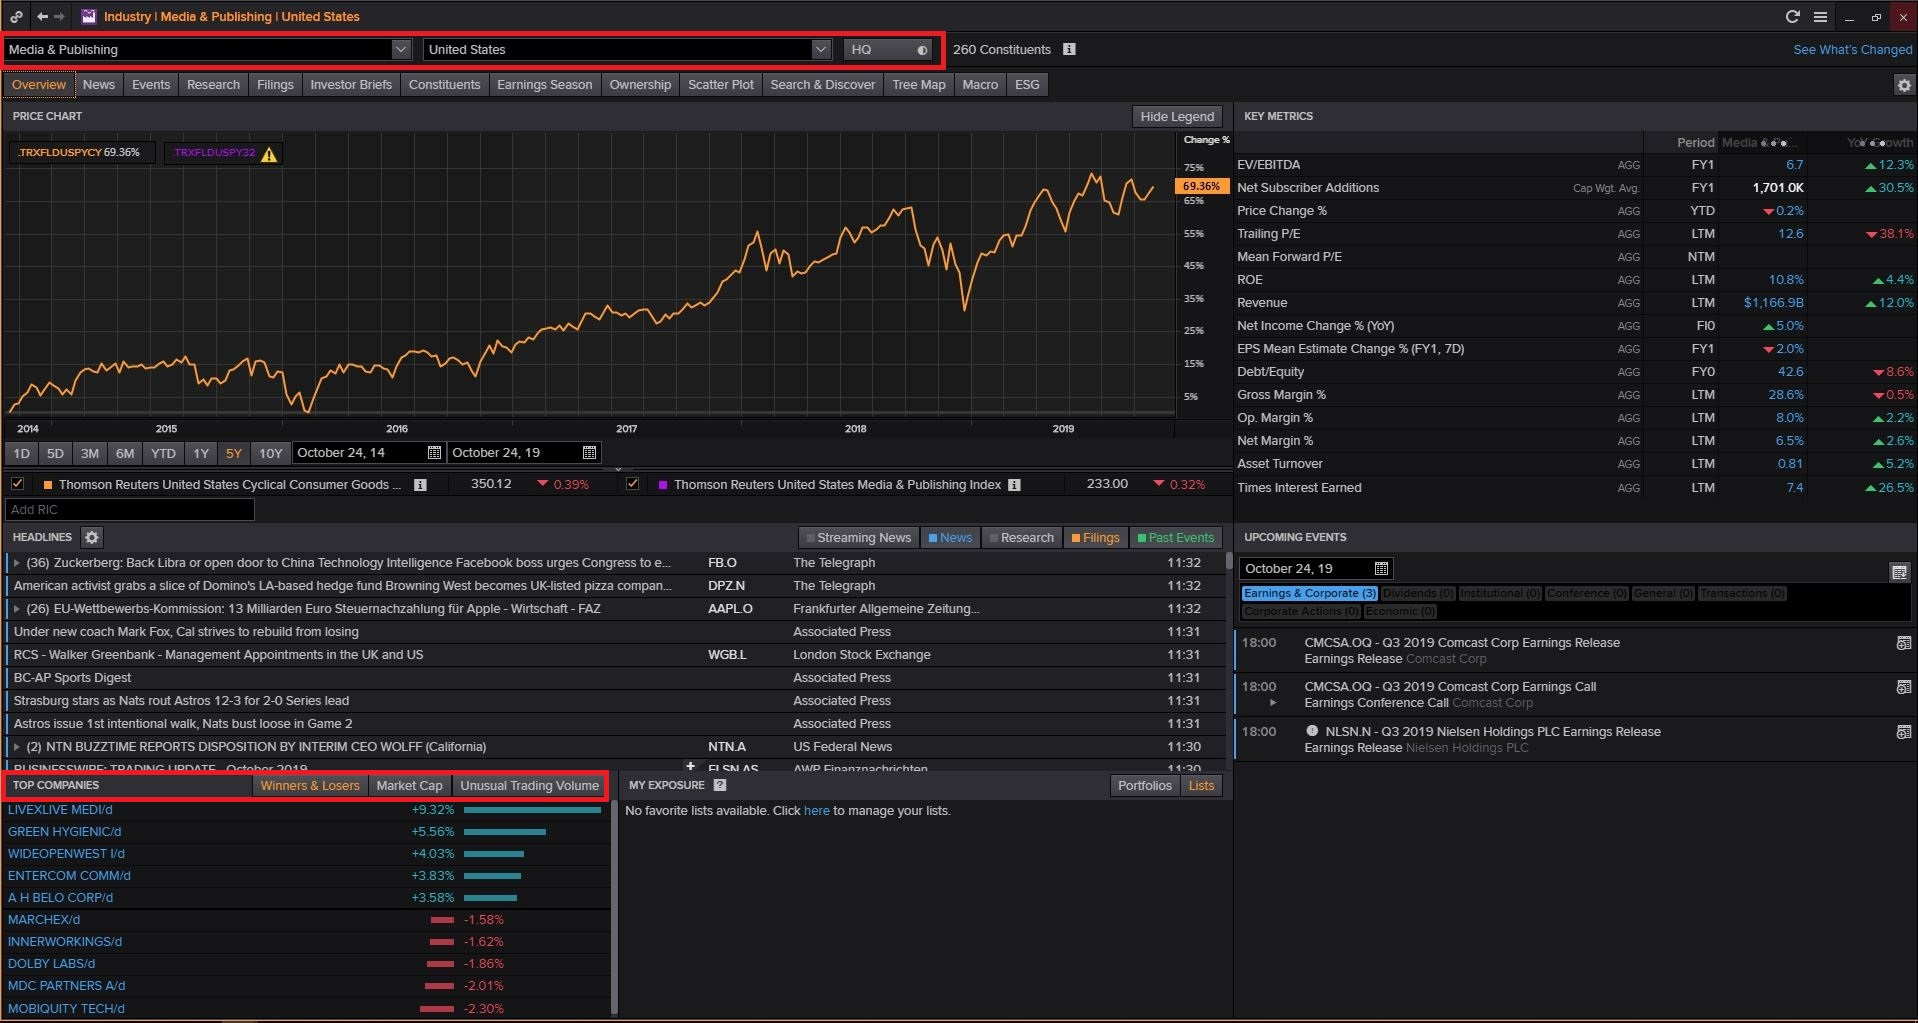 Login to Thomson Reuters Eikon (Available Only in Library) then Type INDUS and Search and Search for Media and Click on Required Industry and Select Country and Click on Top Companies